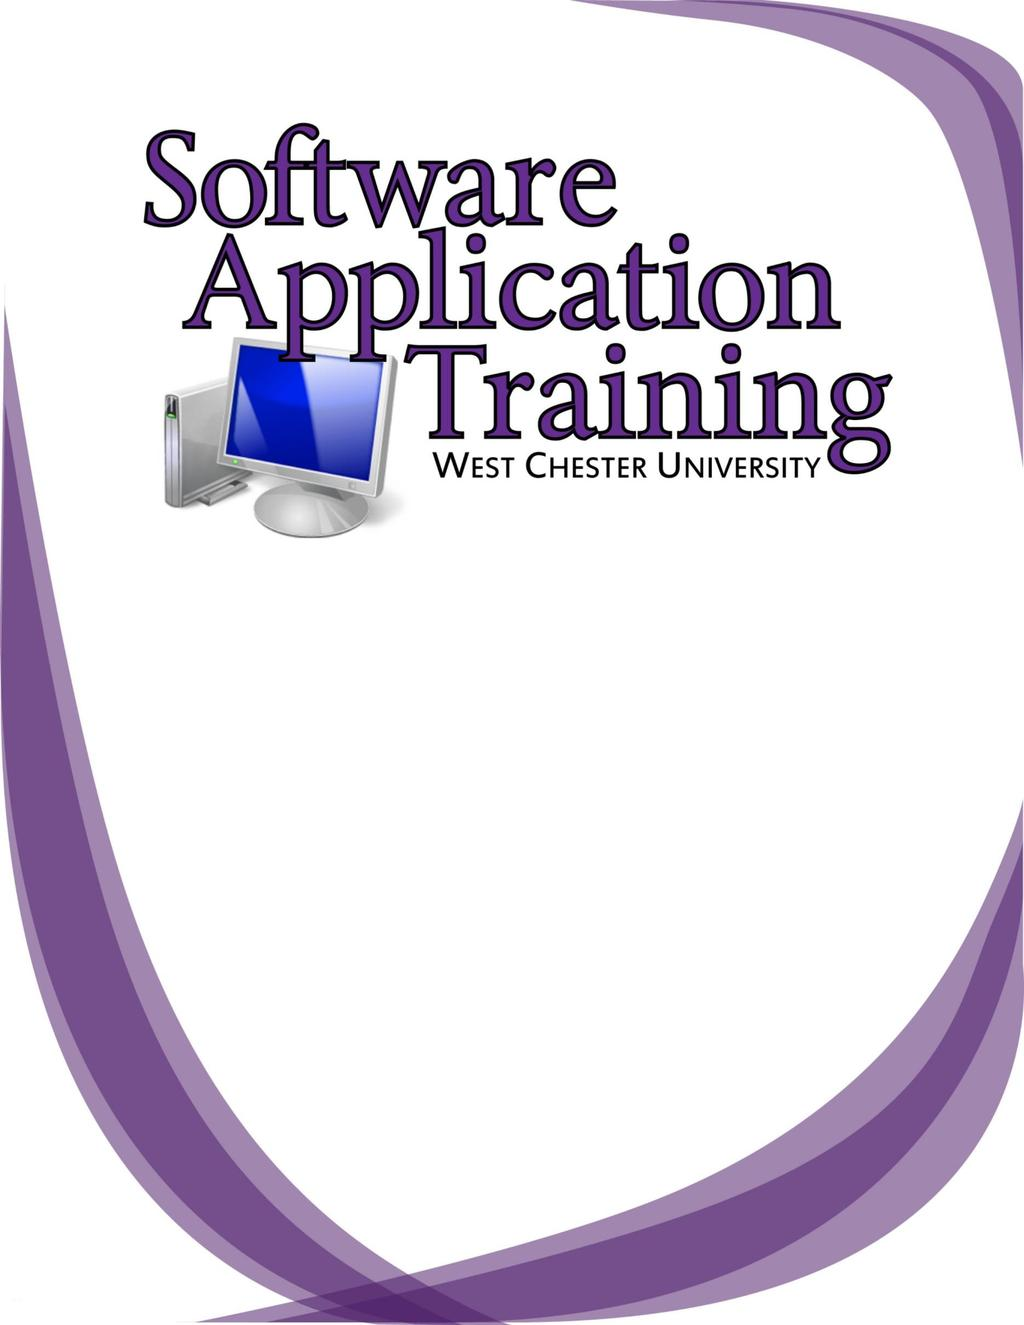 Introduction to Excel 2013 Copyright 2014, Software Application Training, West Chester University.